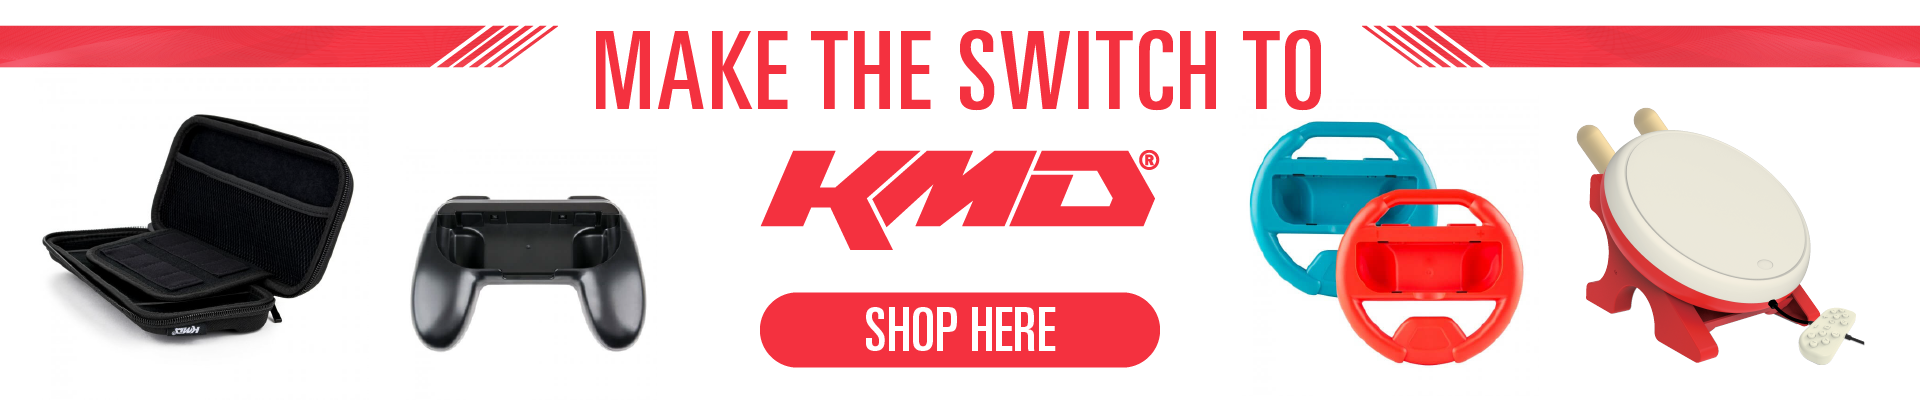 KMD, Nintendo, Switch, Accessories